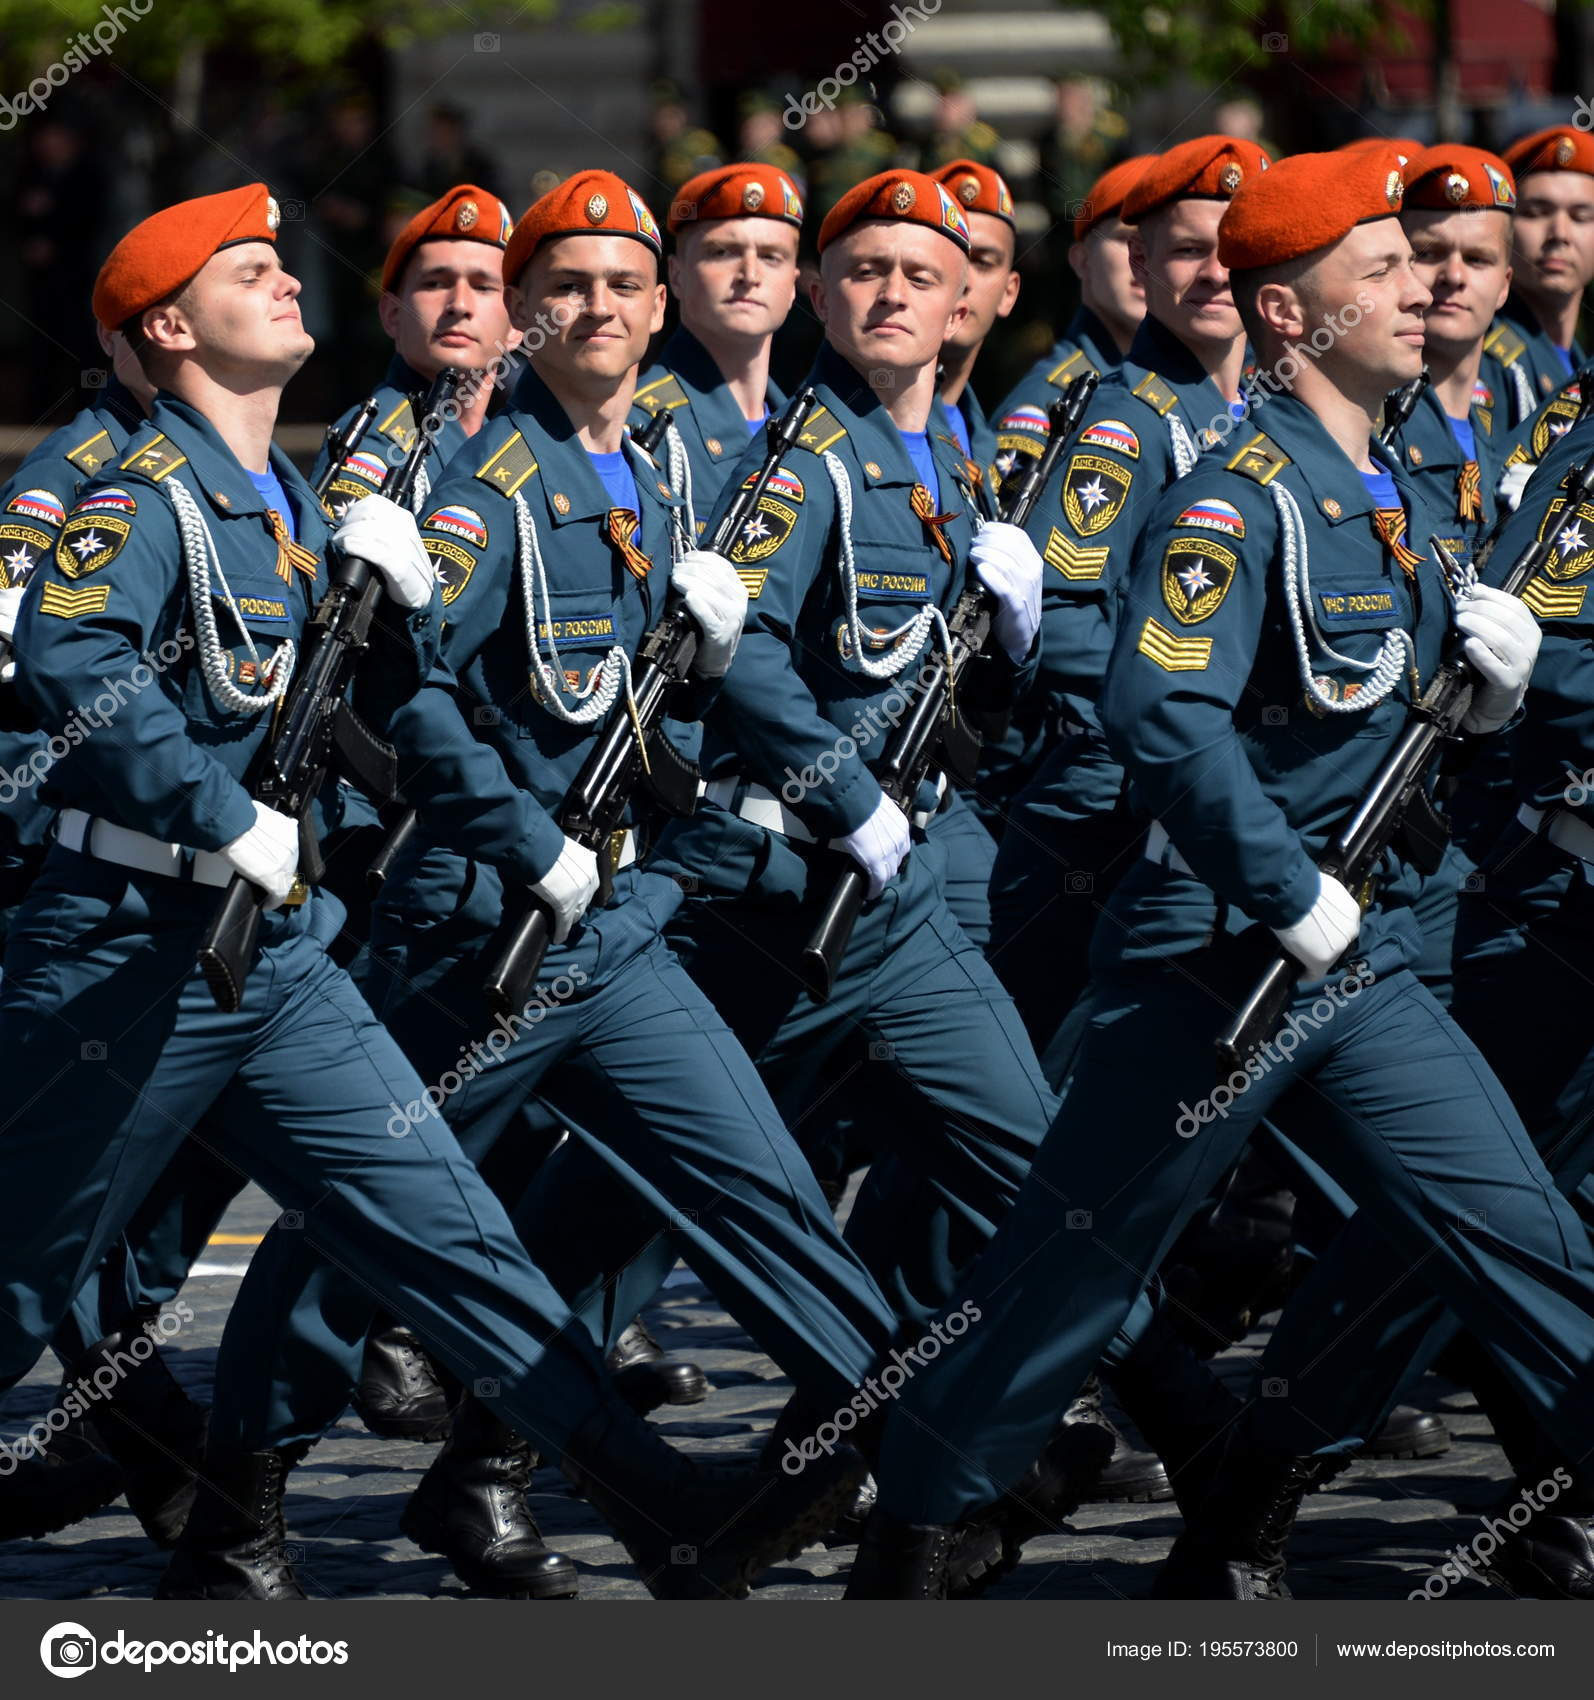 cadets of the academy of civil protection of emercom of russia